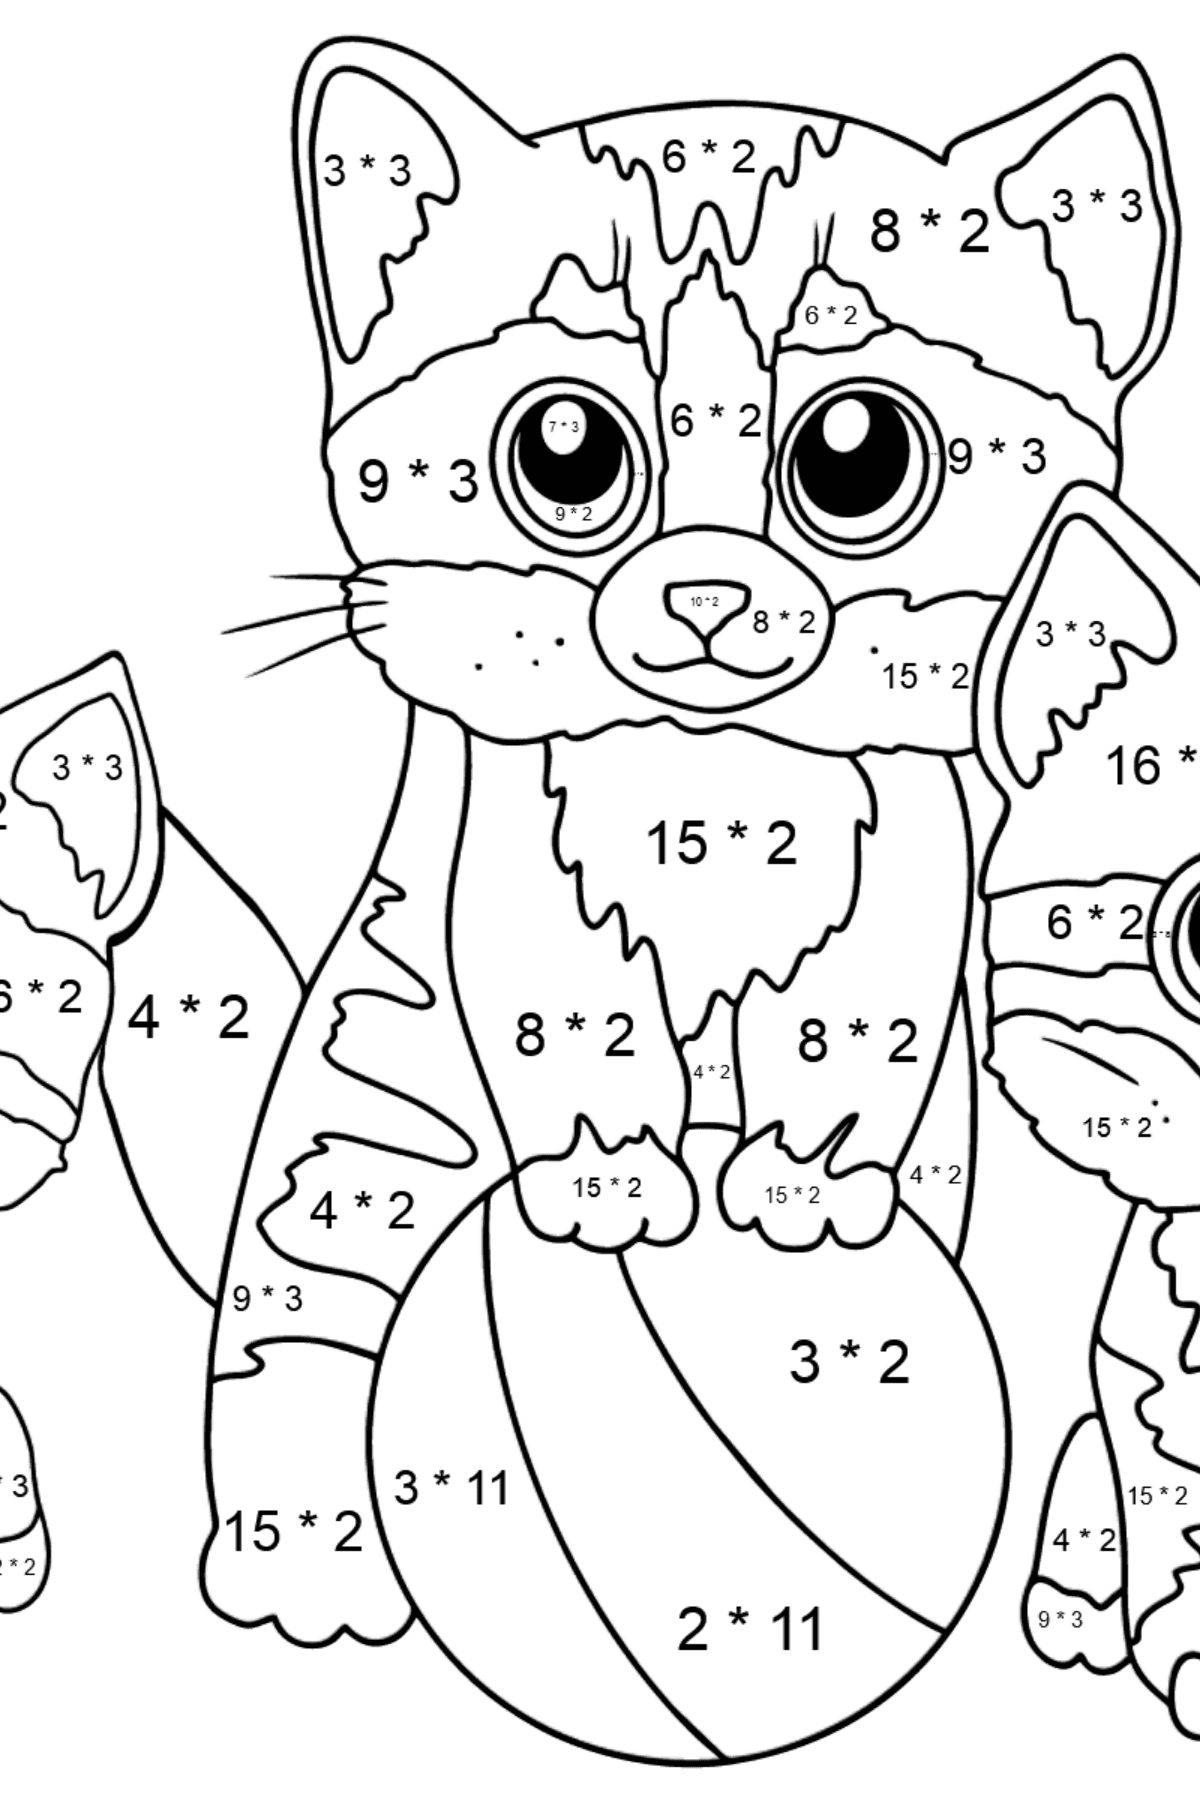 Coloring Page - Three Kittens are Playing Together with a Ball  - Math Coloring - Multiplication for Kids